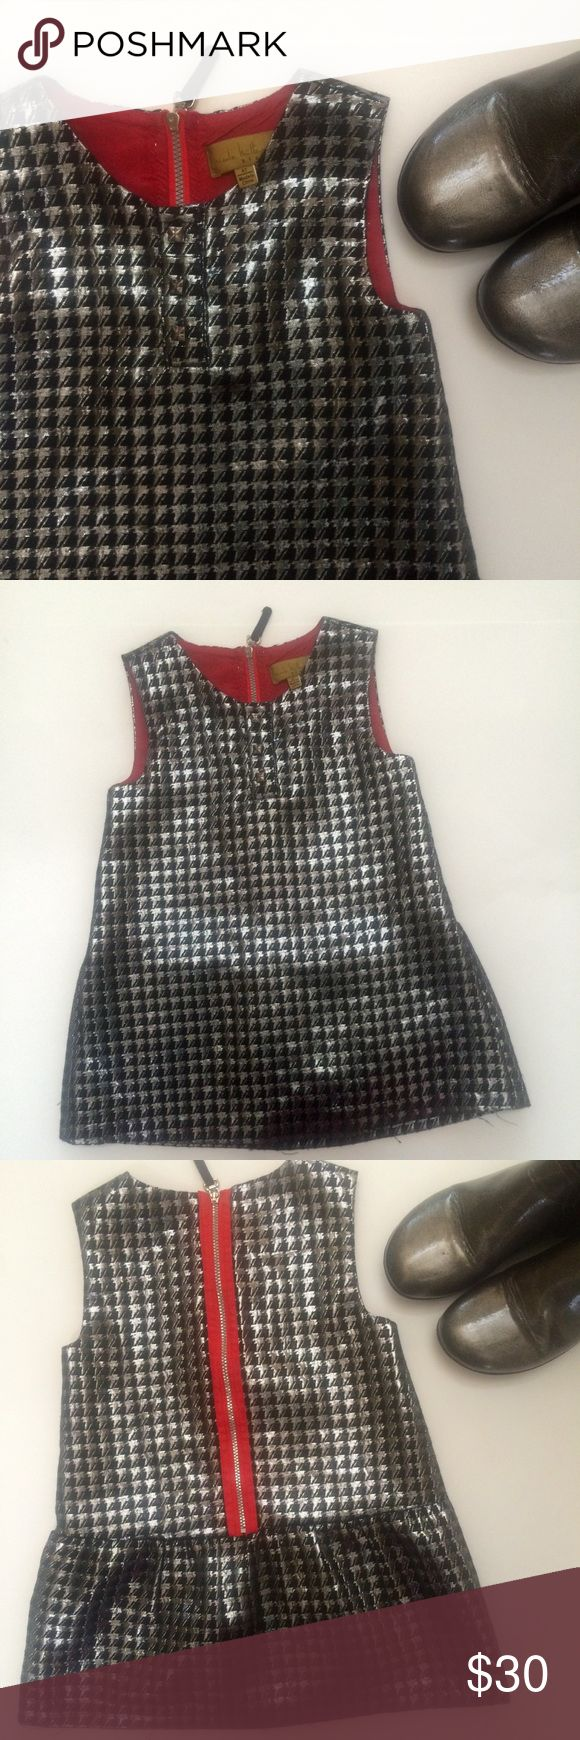 Nicole Miller Kids Metallic Special Occasion Dress Simply adorable metallic holiday dress by Nicole Miller Kids. Beautiful black and silver thread houndstooth pattern. A-line design, 3 metal buttons adorn the front, lined, red detail on back, shiny silver zipper with black velvet pull, sleeveless. VGUC. Nicole Miller Dresses